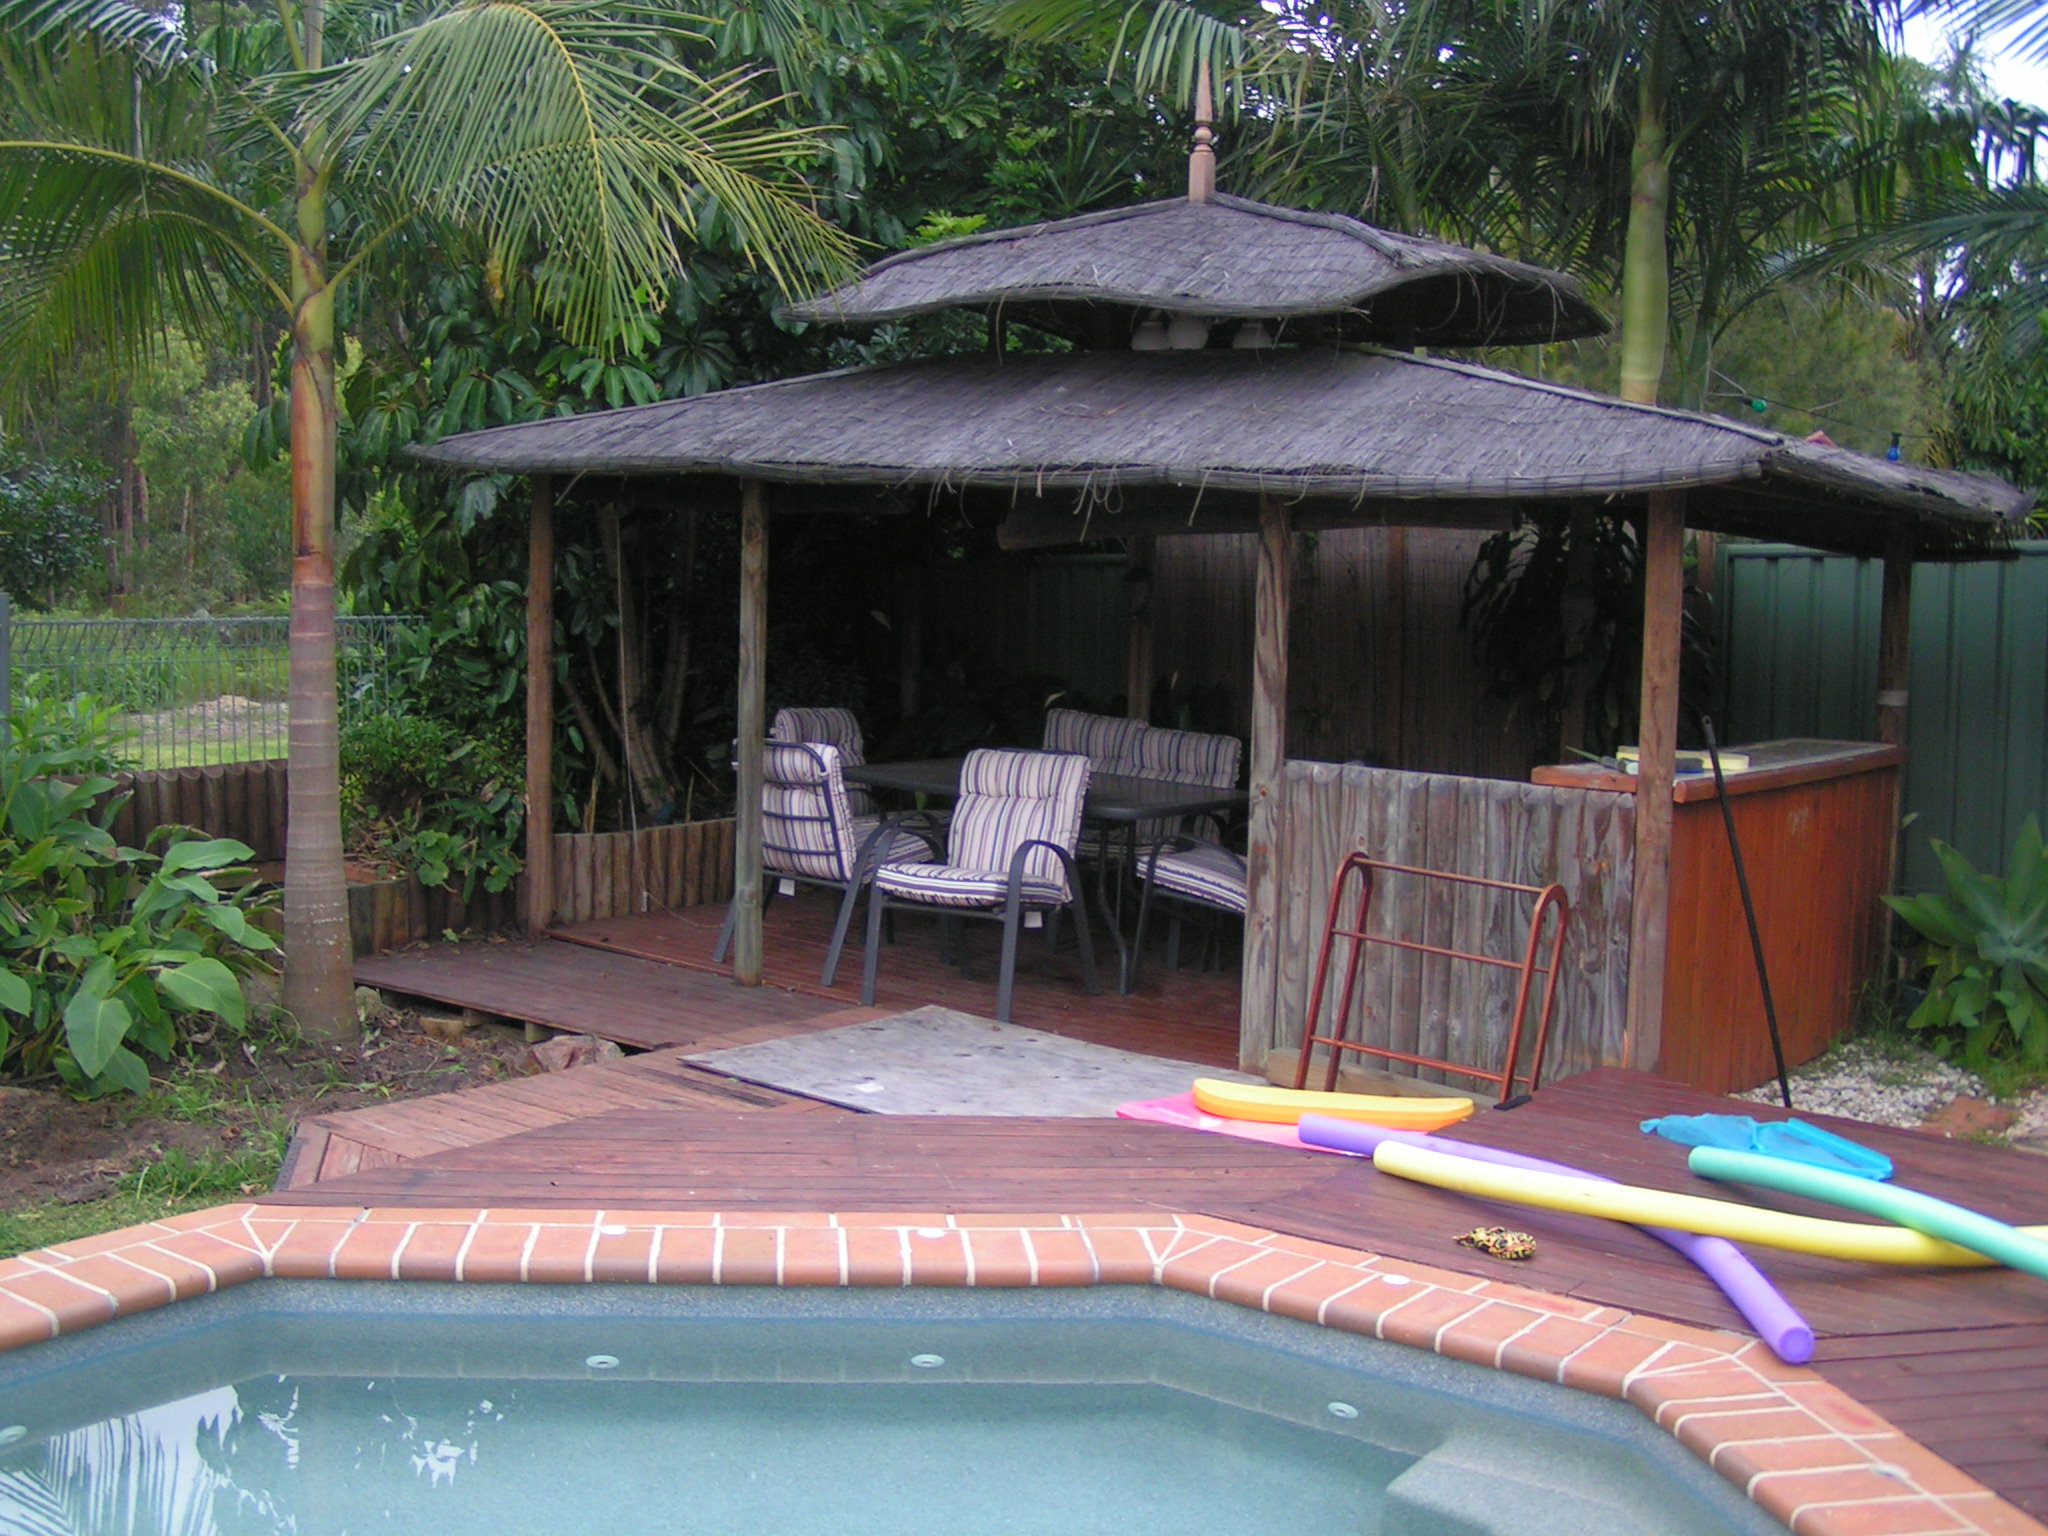 Can I See A Picture Of Your Swimming Pool Pergola Gazebo